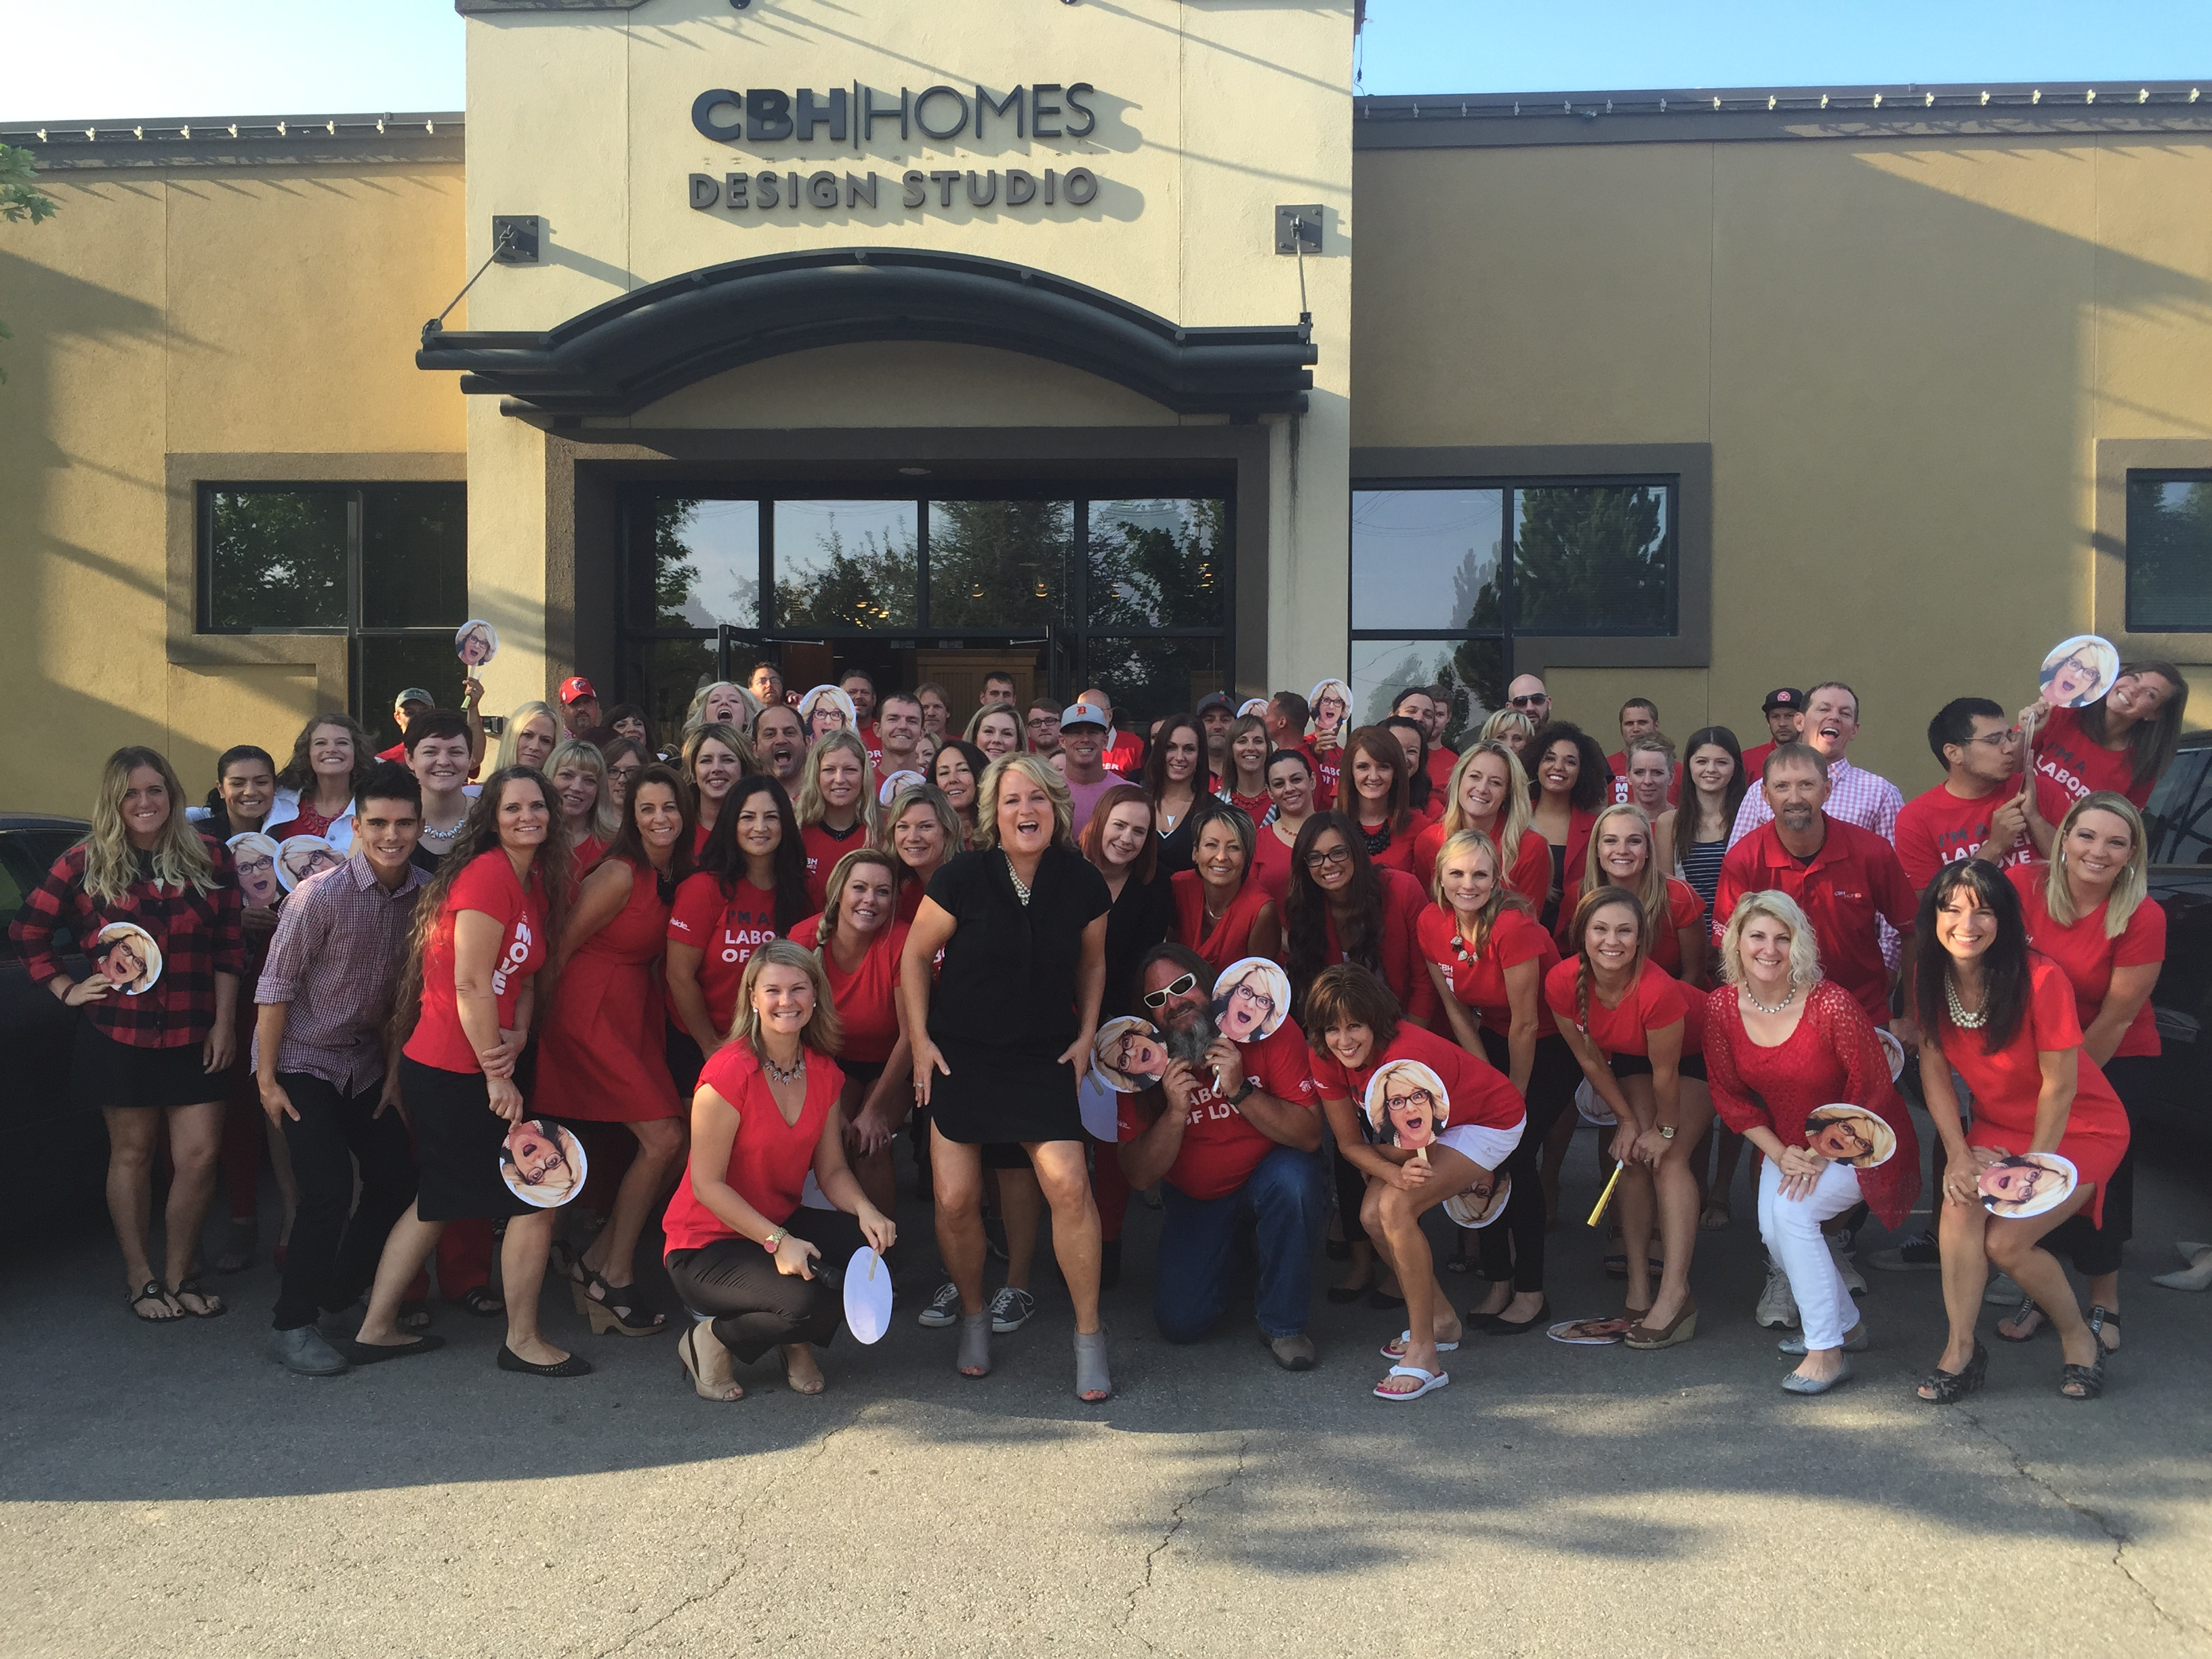 CBH Homes offers compelling workplace culture